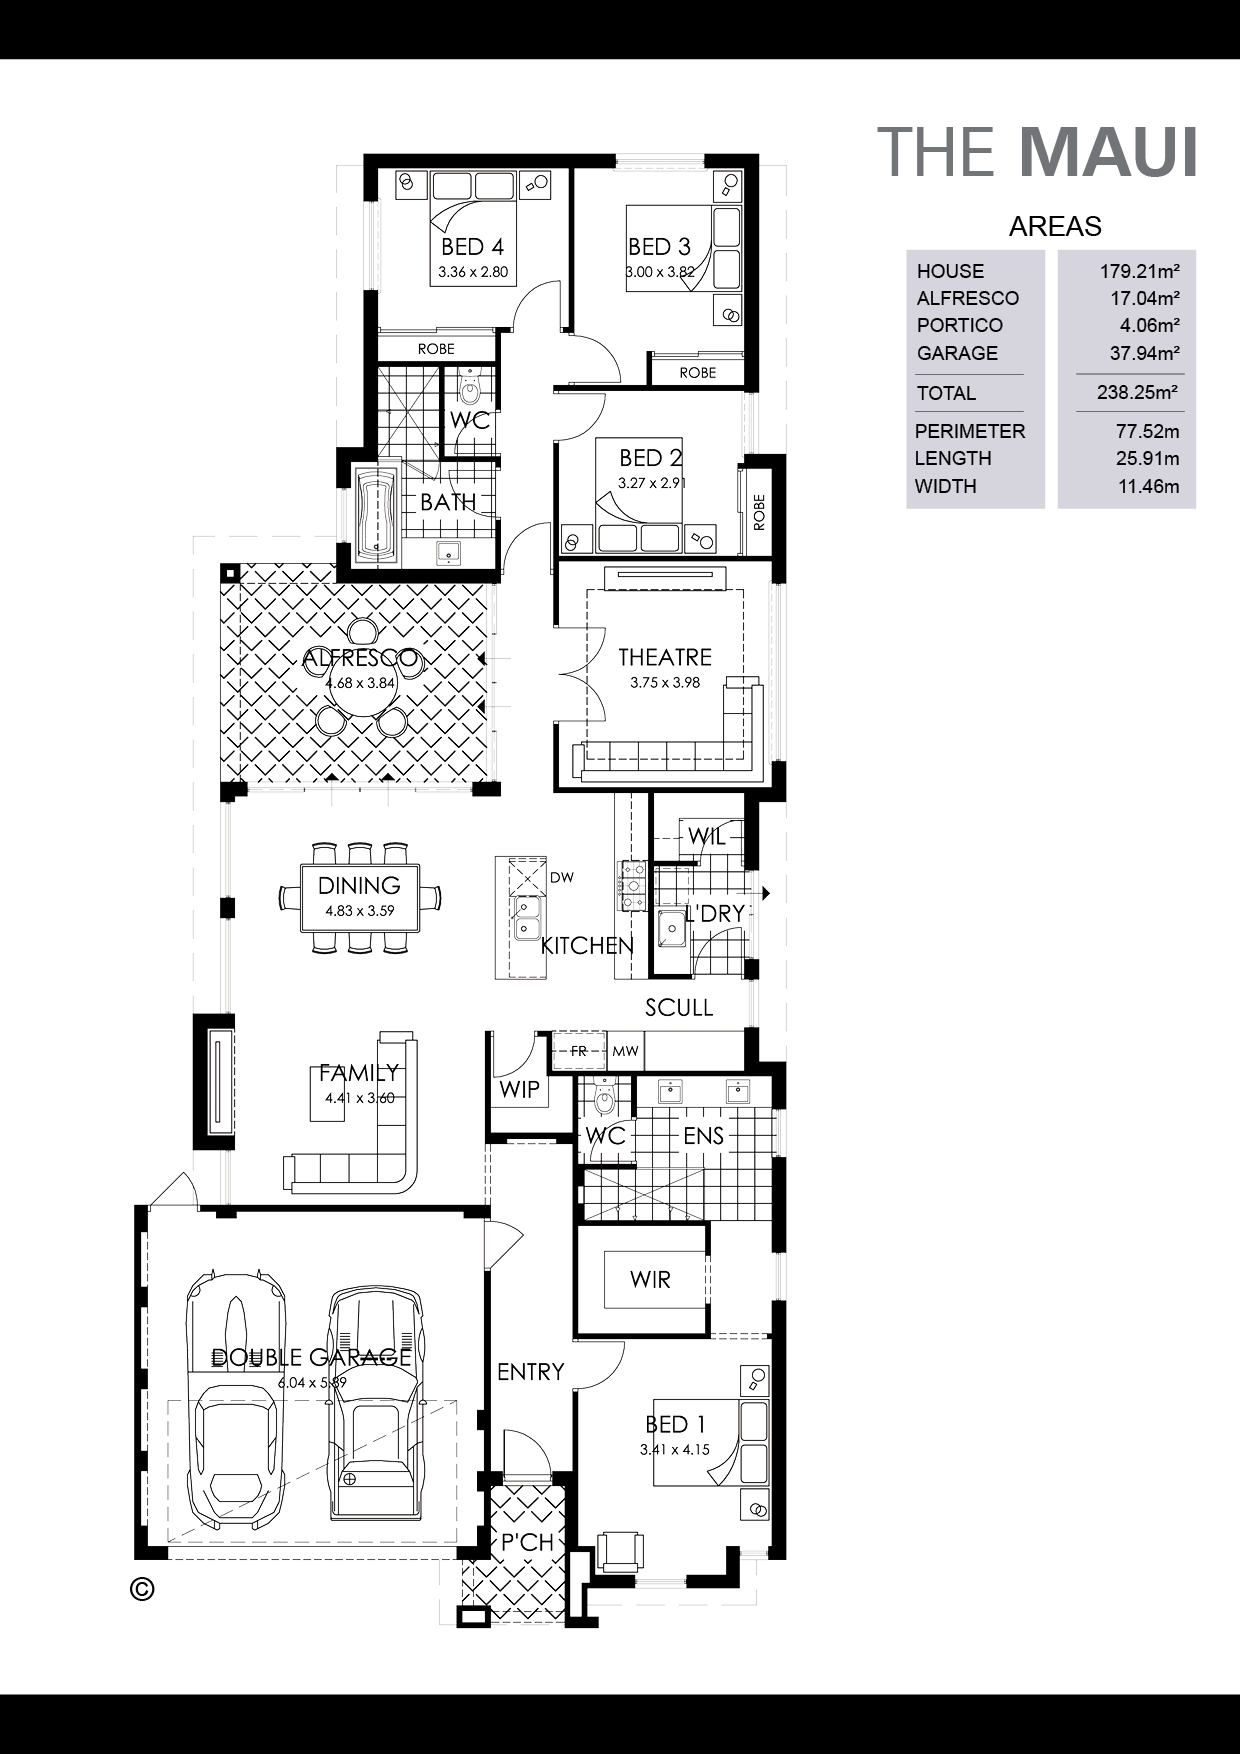 The Maui Floorplan